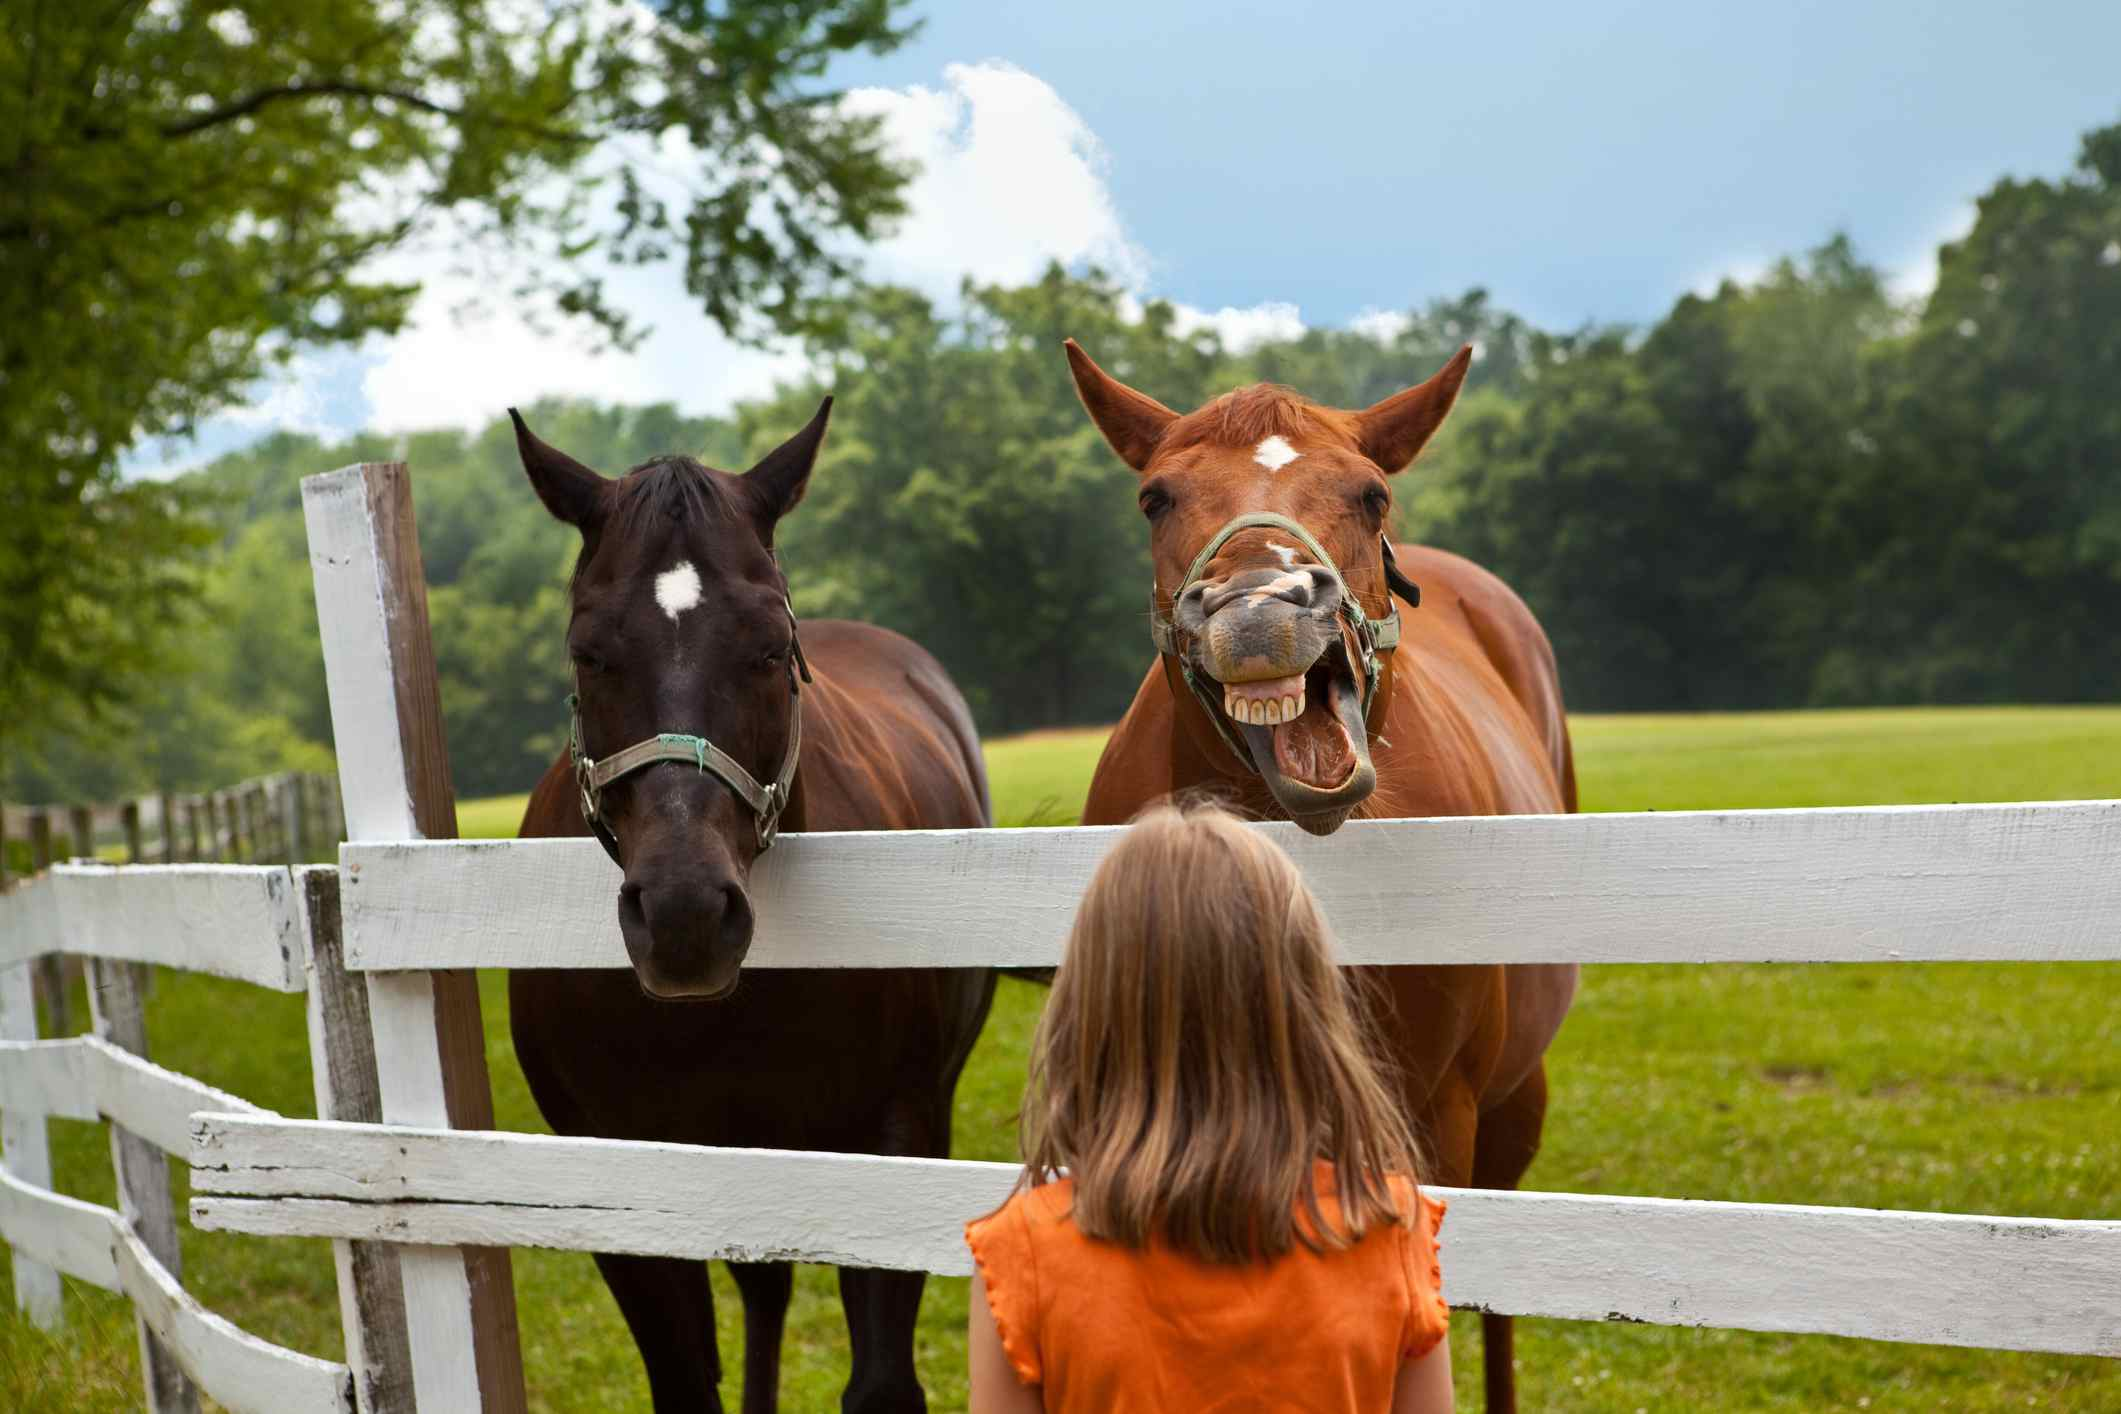 Two horses communicating with girl